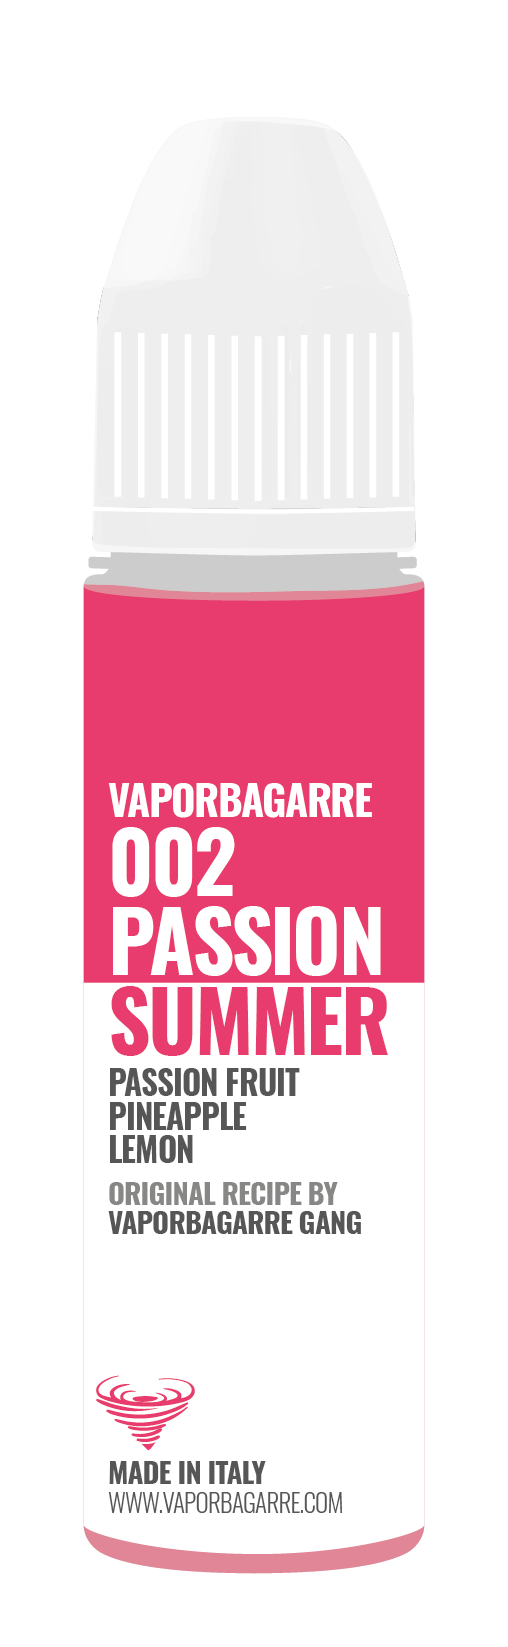 Passion Summer by Vaporbagarre